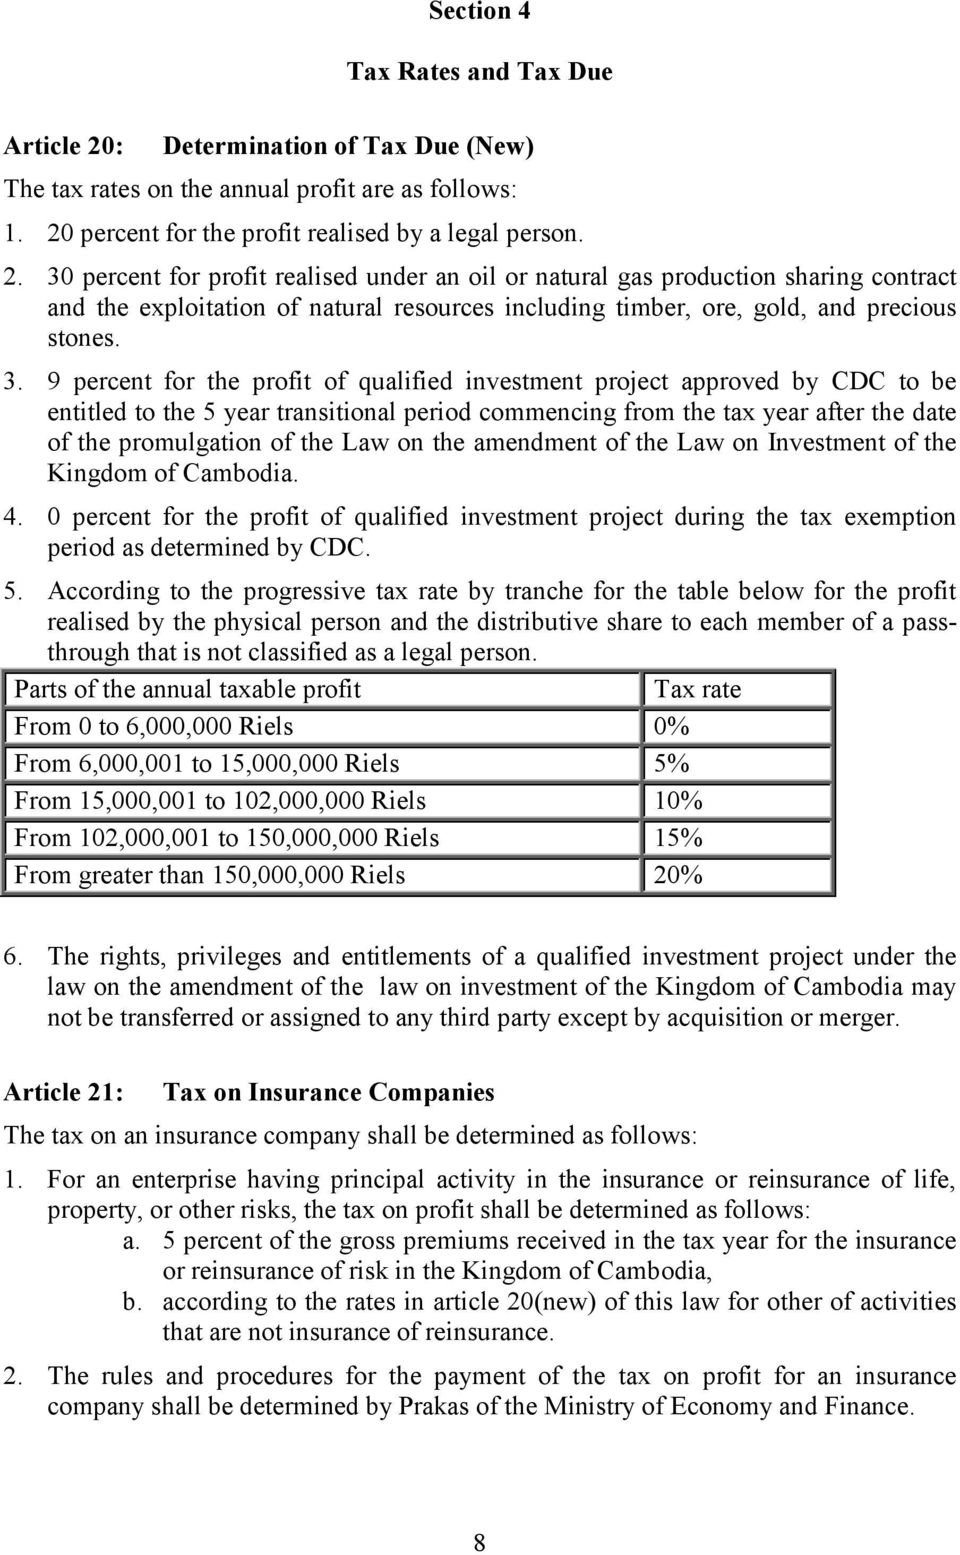 on the amendment of the Law on Investment of the Kingdom of Cambodia. 4. 0 percent for the profit of qualified investment project during the tax exemption period as determined by CDC. 5.